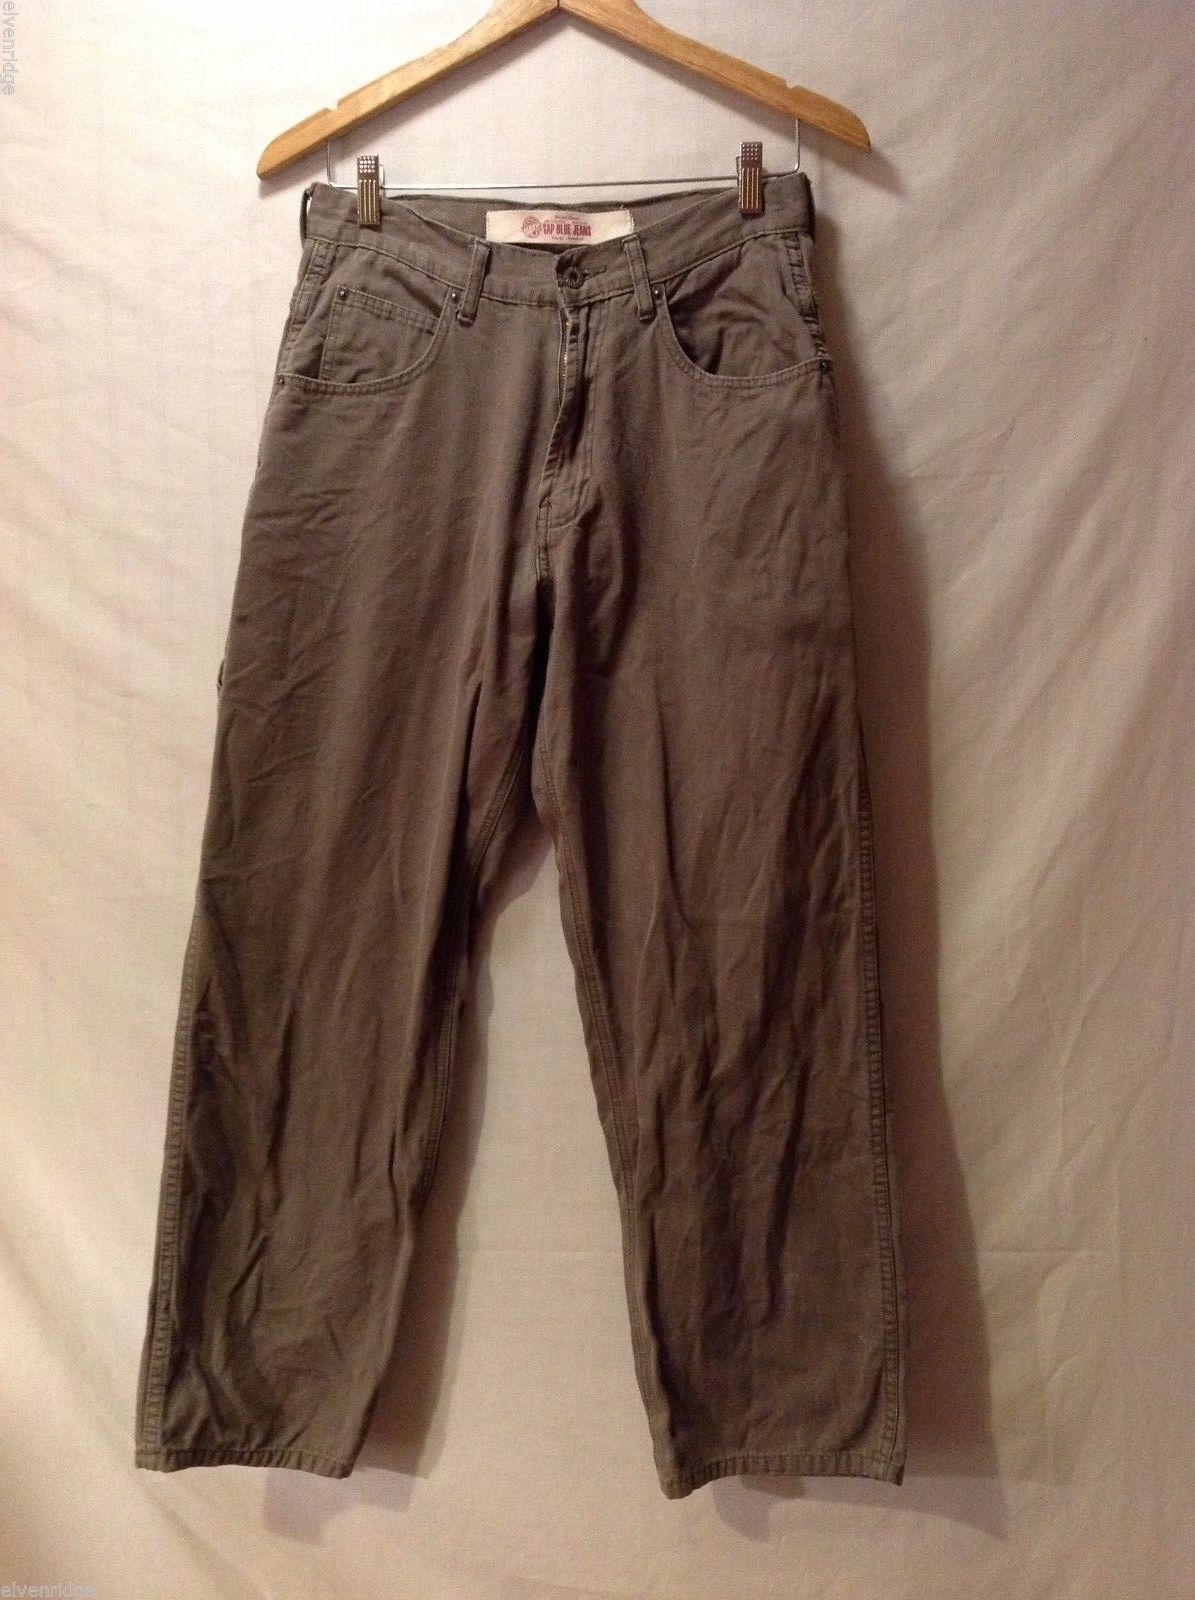 GAP Blue Jeans Womens Army Green Carpenter Pants, Size W29X30L